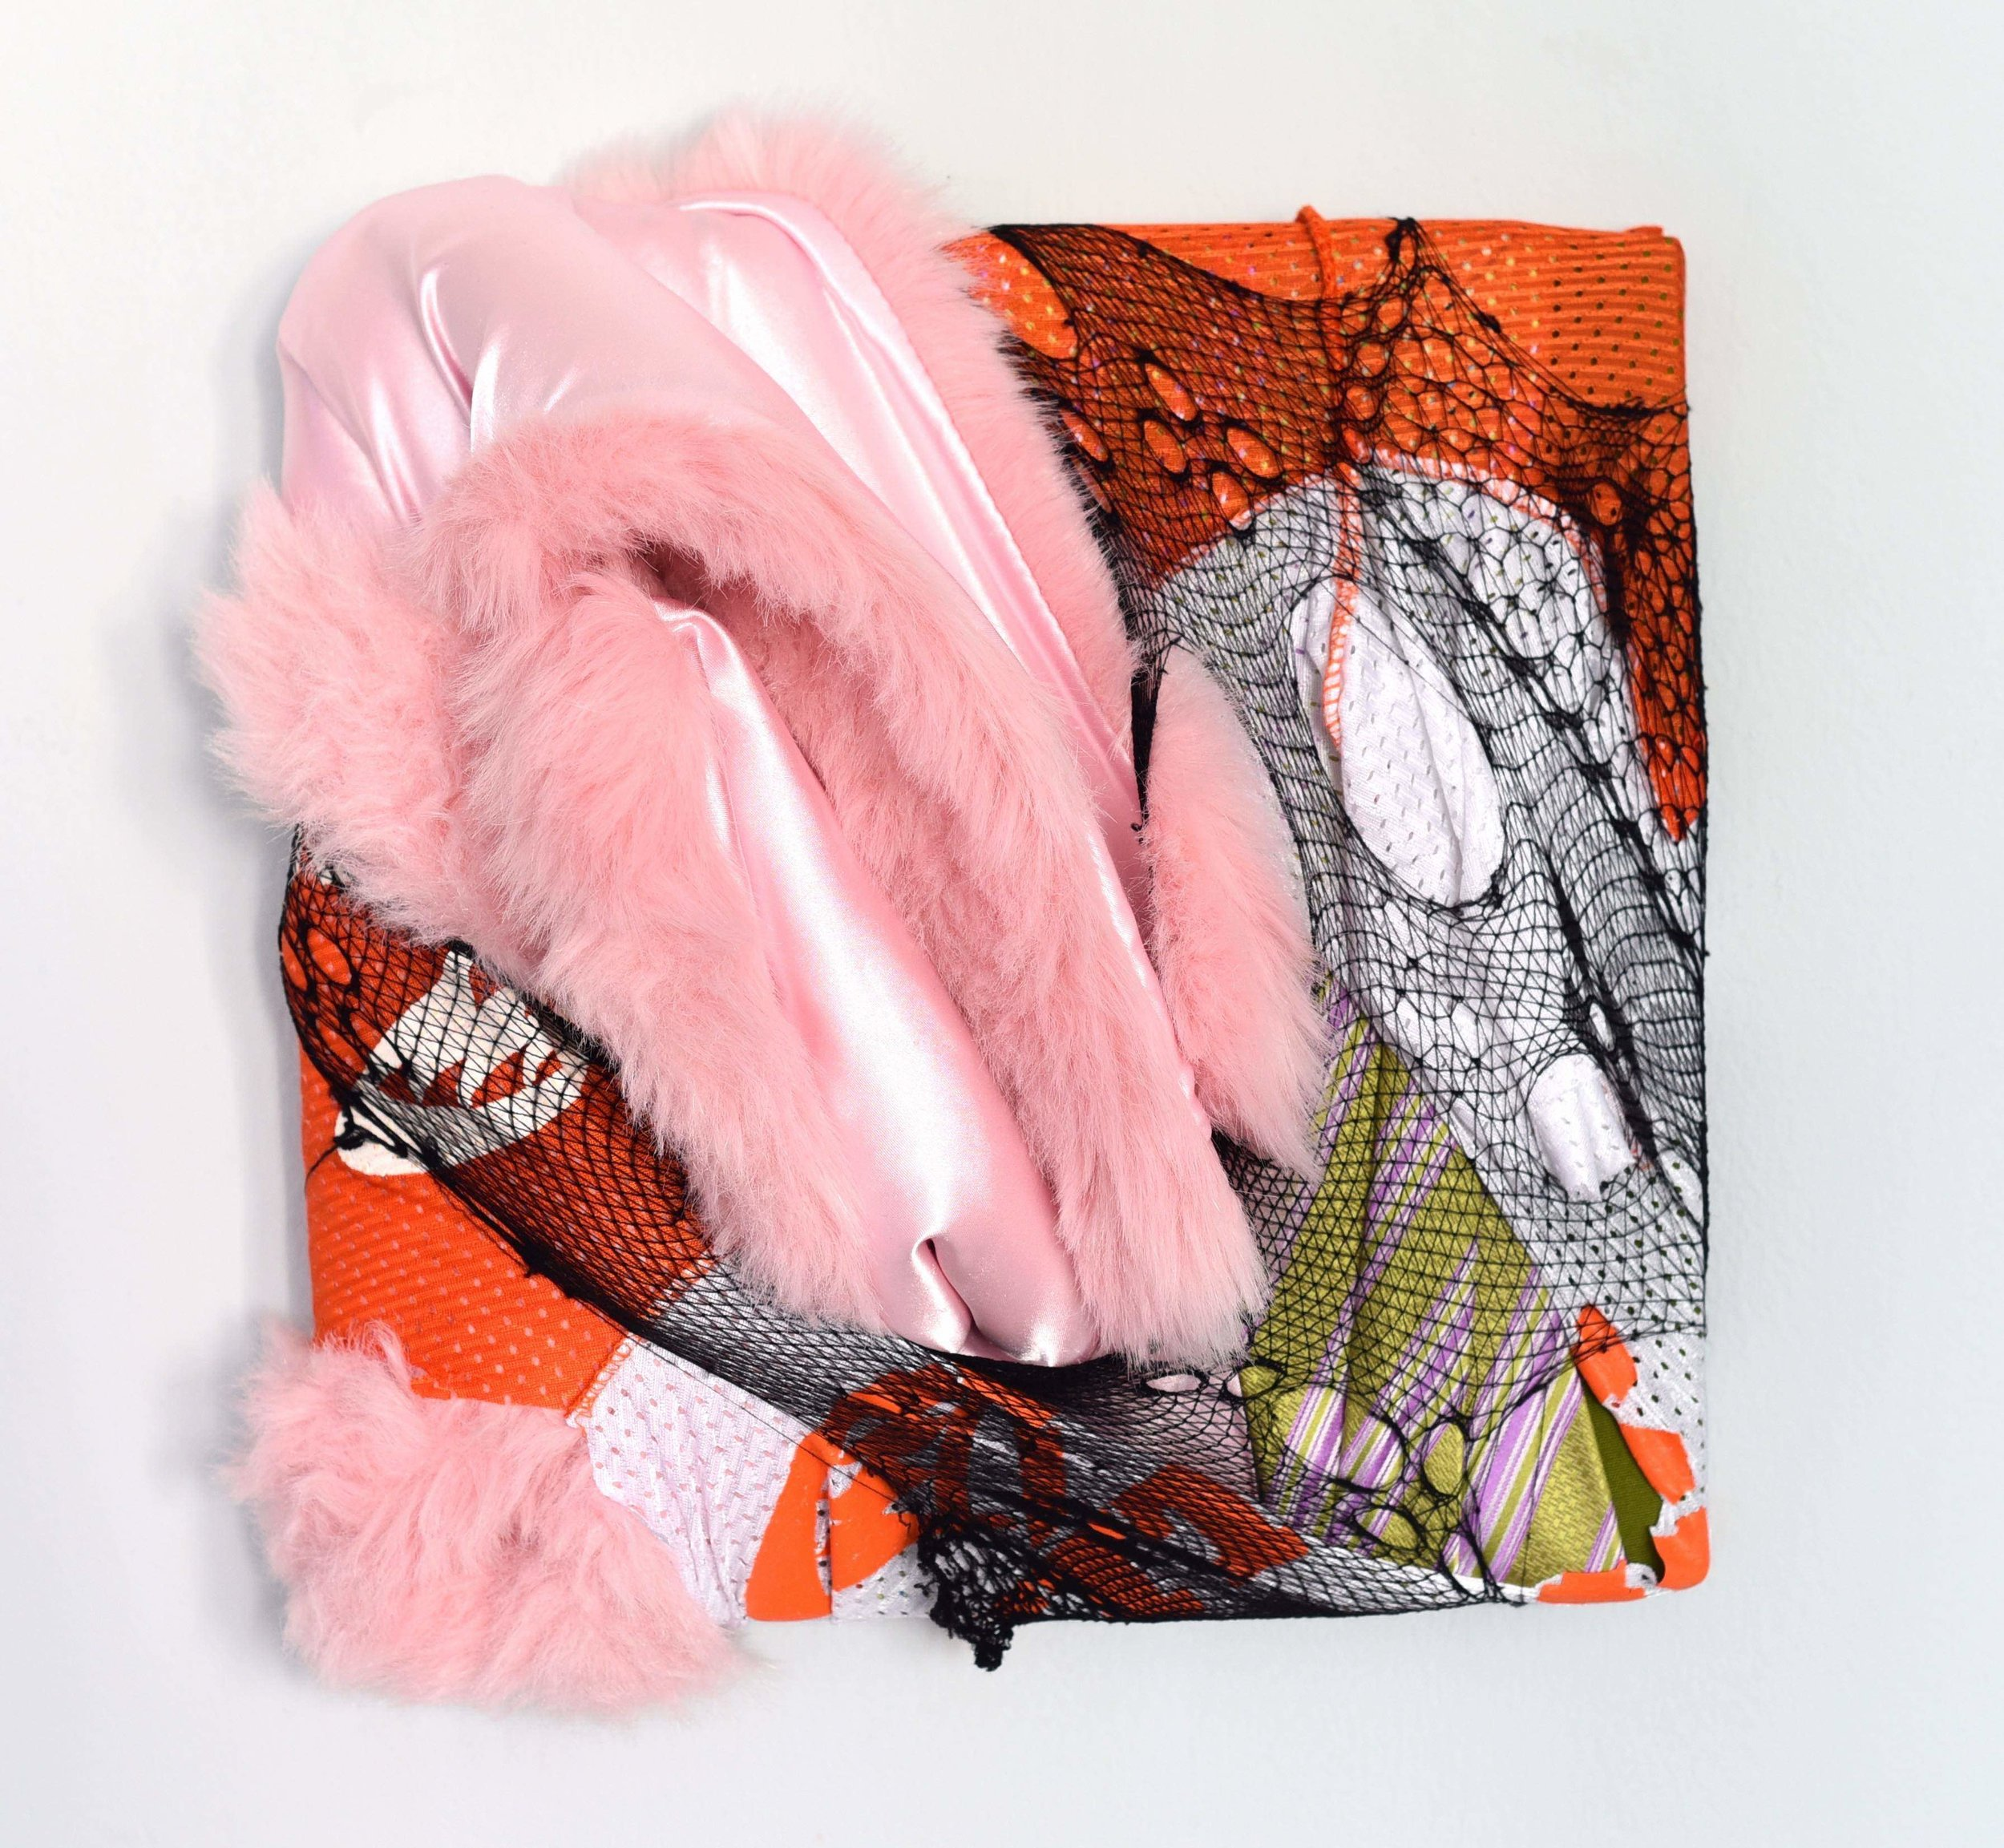 Peccadillo, 2019, faux fur, fabric scraps and nylon on stretcher bars, 13 x 12.5 x 6 in, 850$